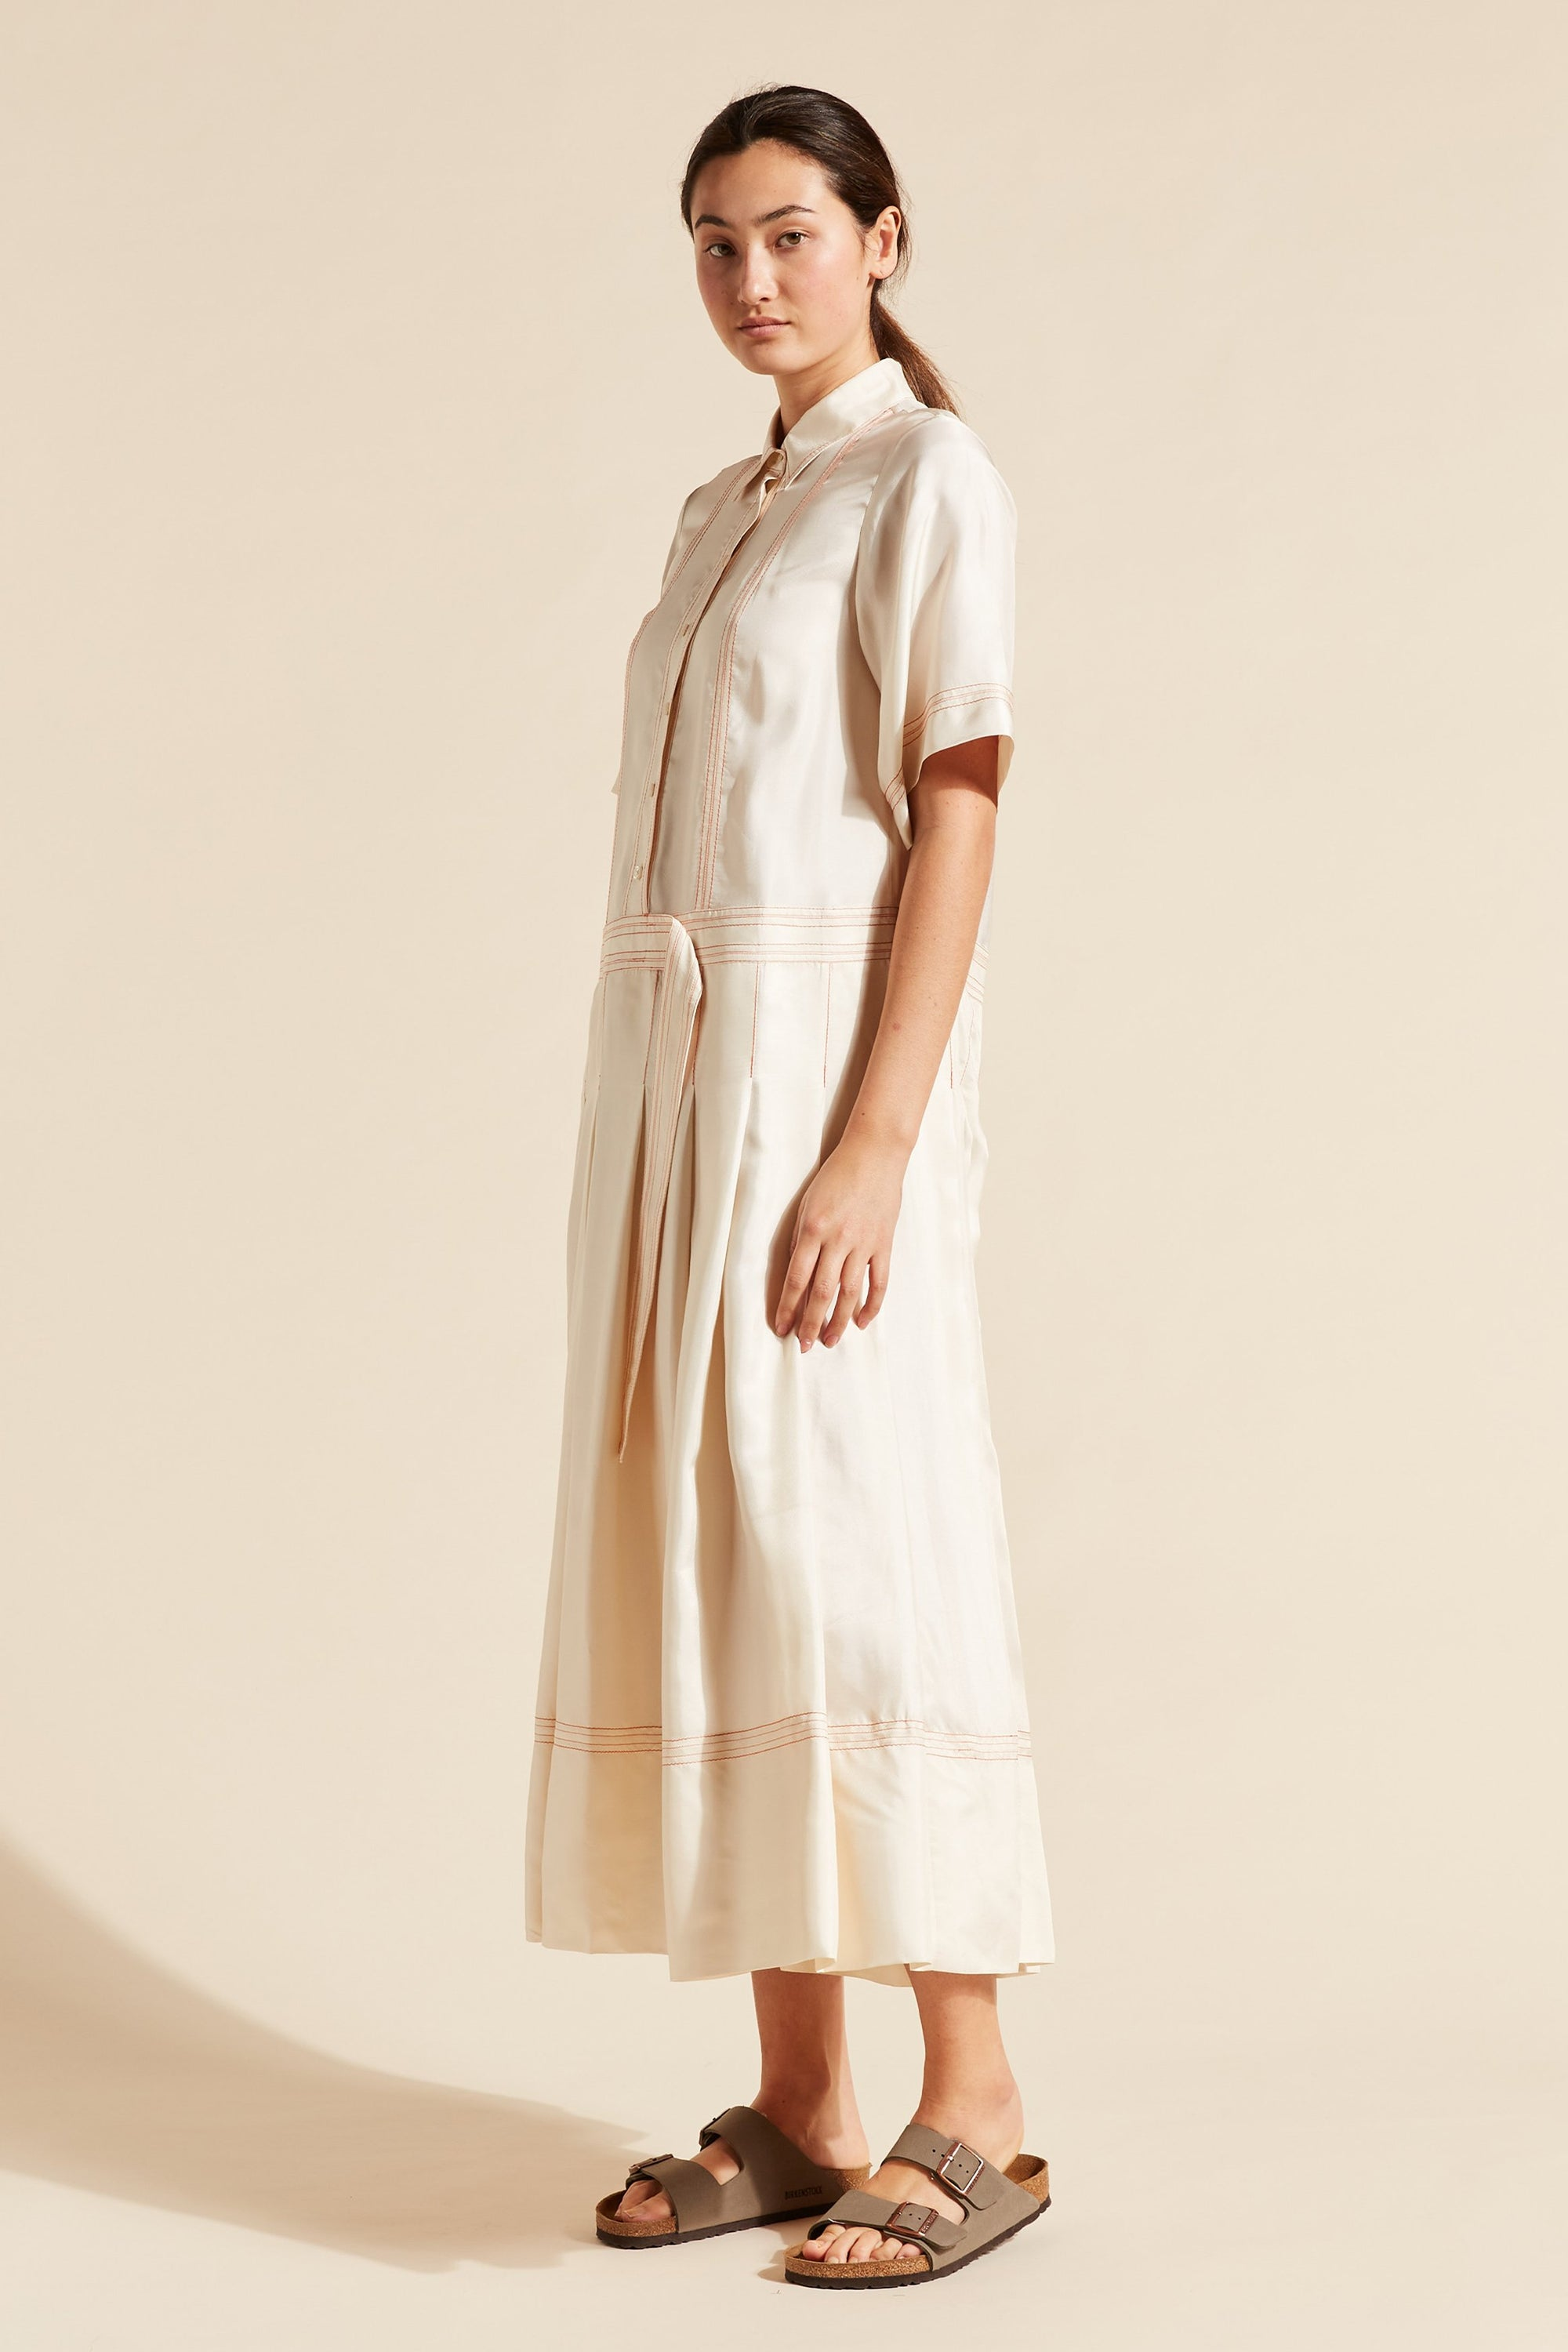 Adelaide Short Sleeve Shirtdress